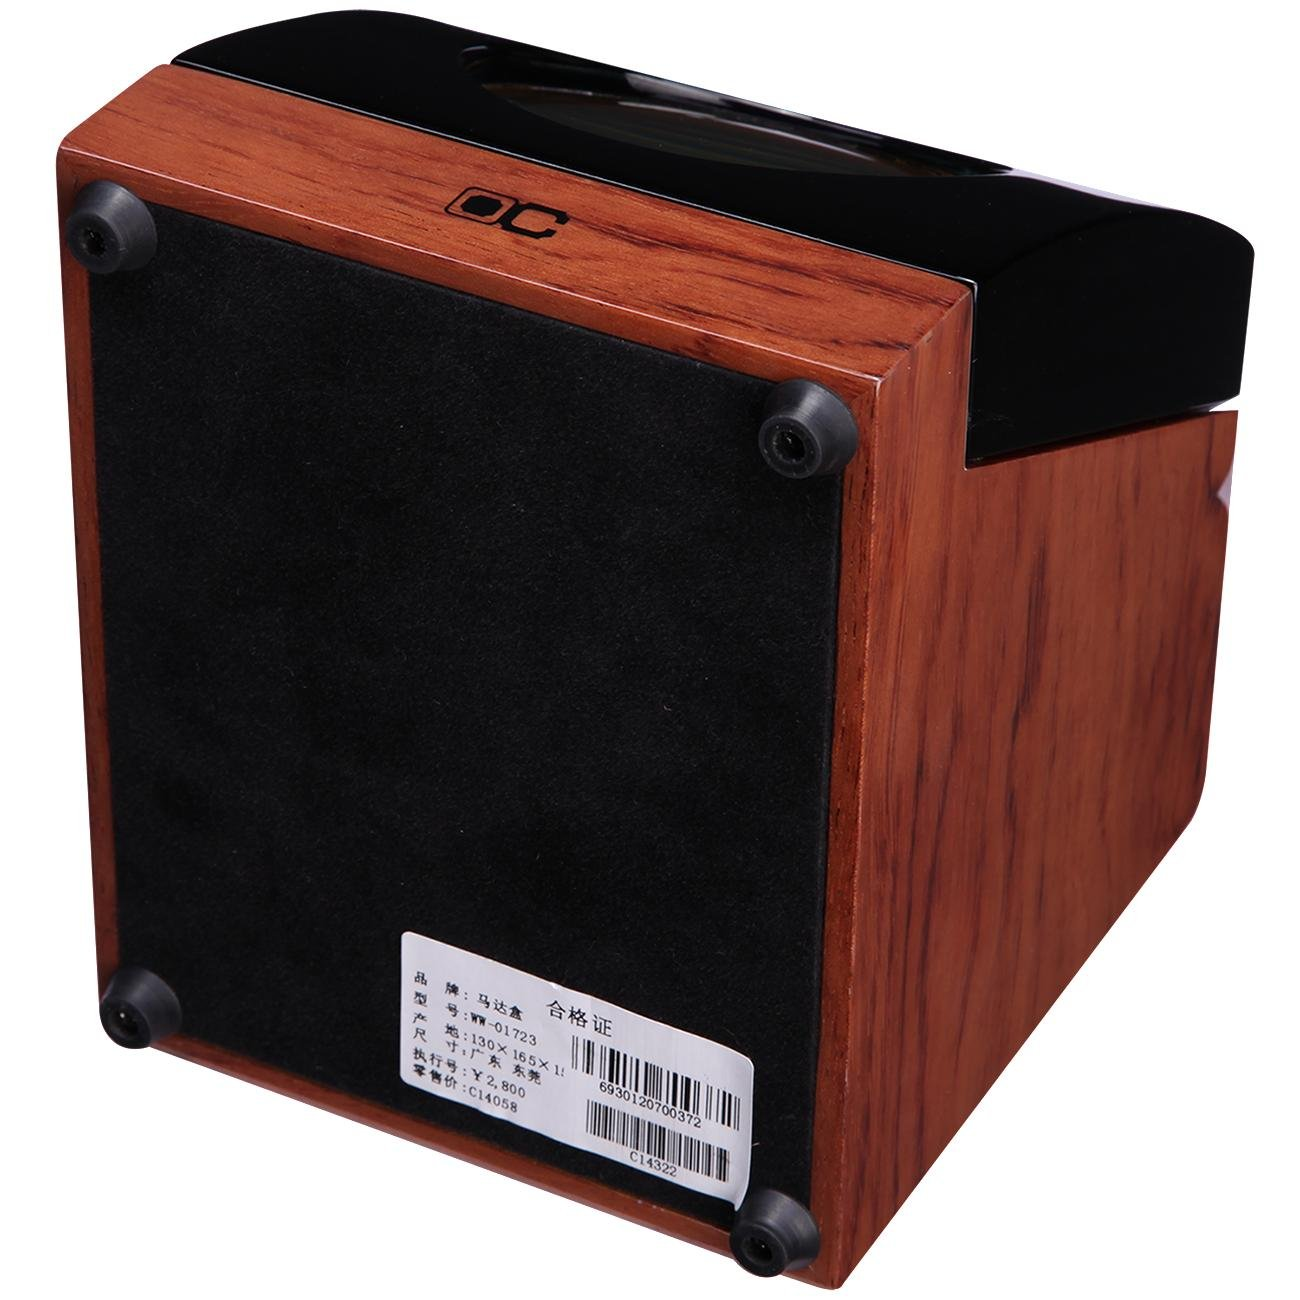 KAIHE-BOX Classic Watch Winders for 1 Watches for automatic Watch Winder Rotator Case Cover Storage H , #1 by KAIHE-BOX (Image #3)